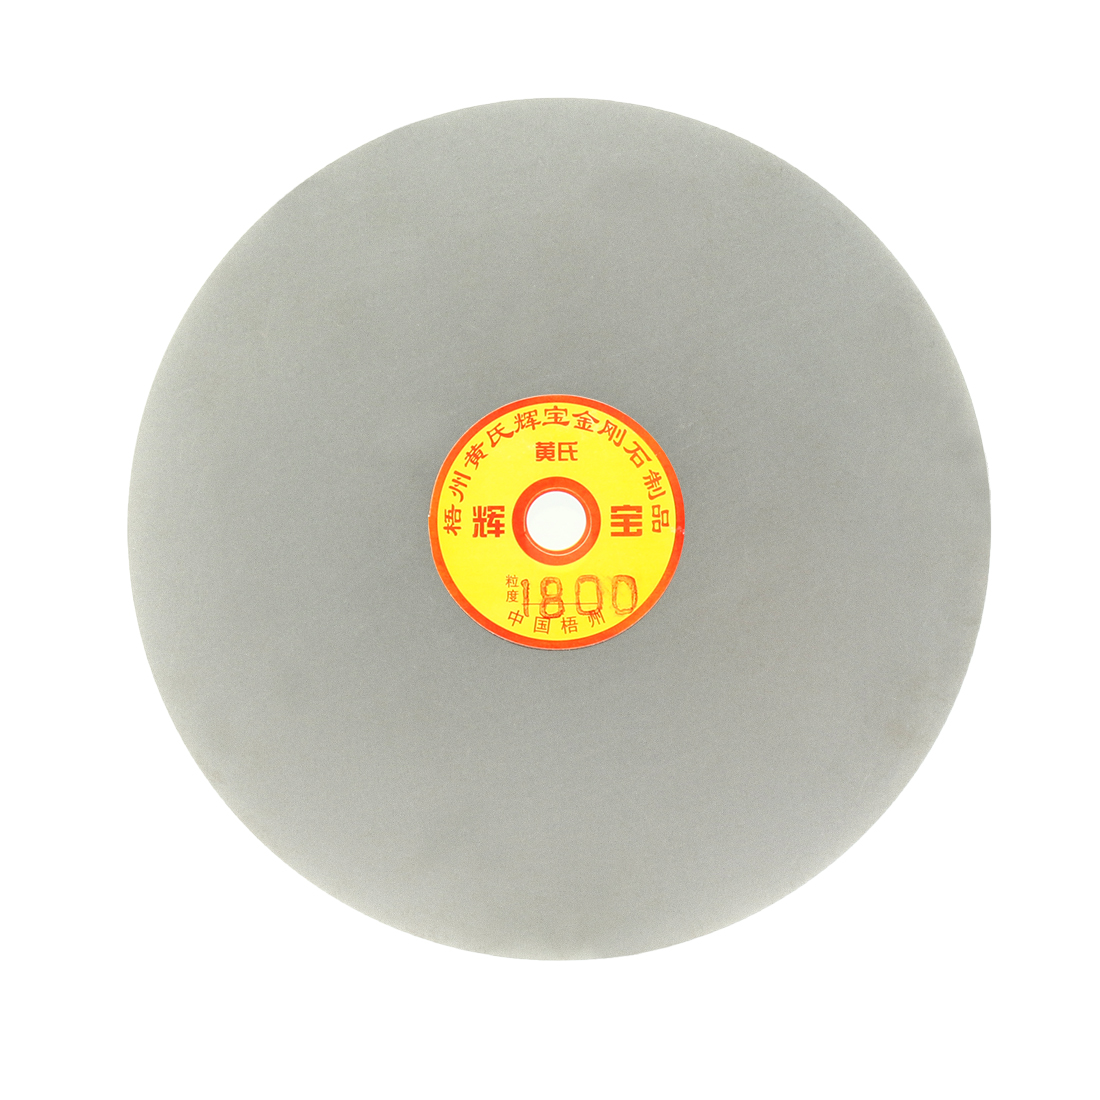 180mm 7-inch Grit 1800 Diamond Coated Flat Lap Disk Wheel Grinding Sanding Disc